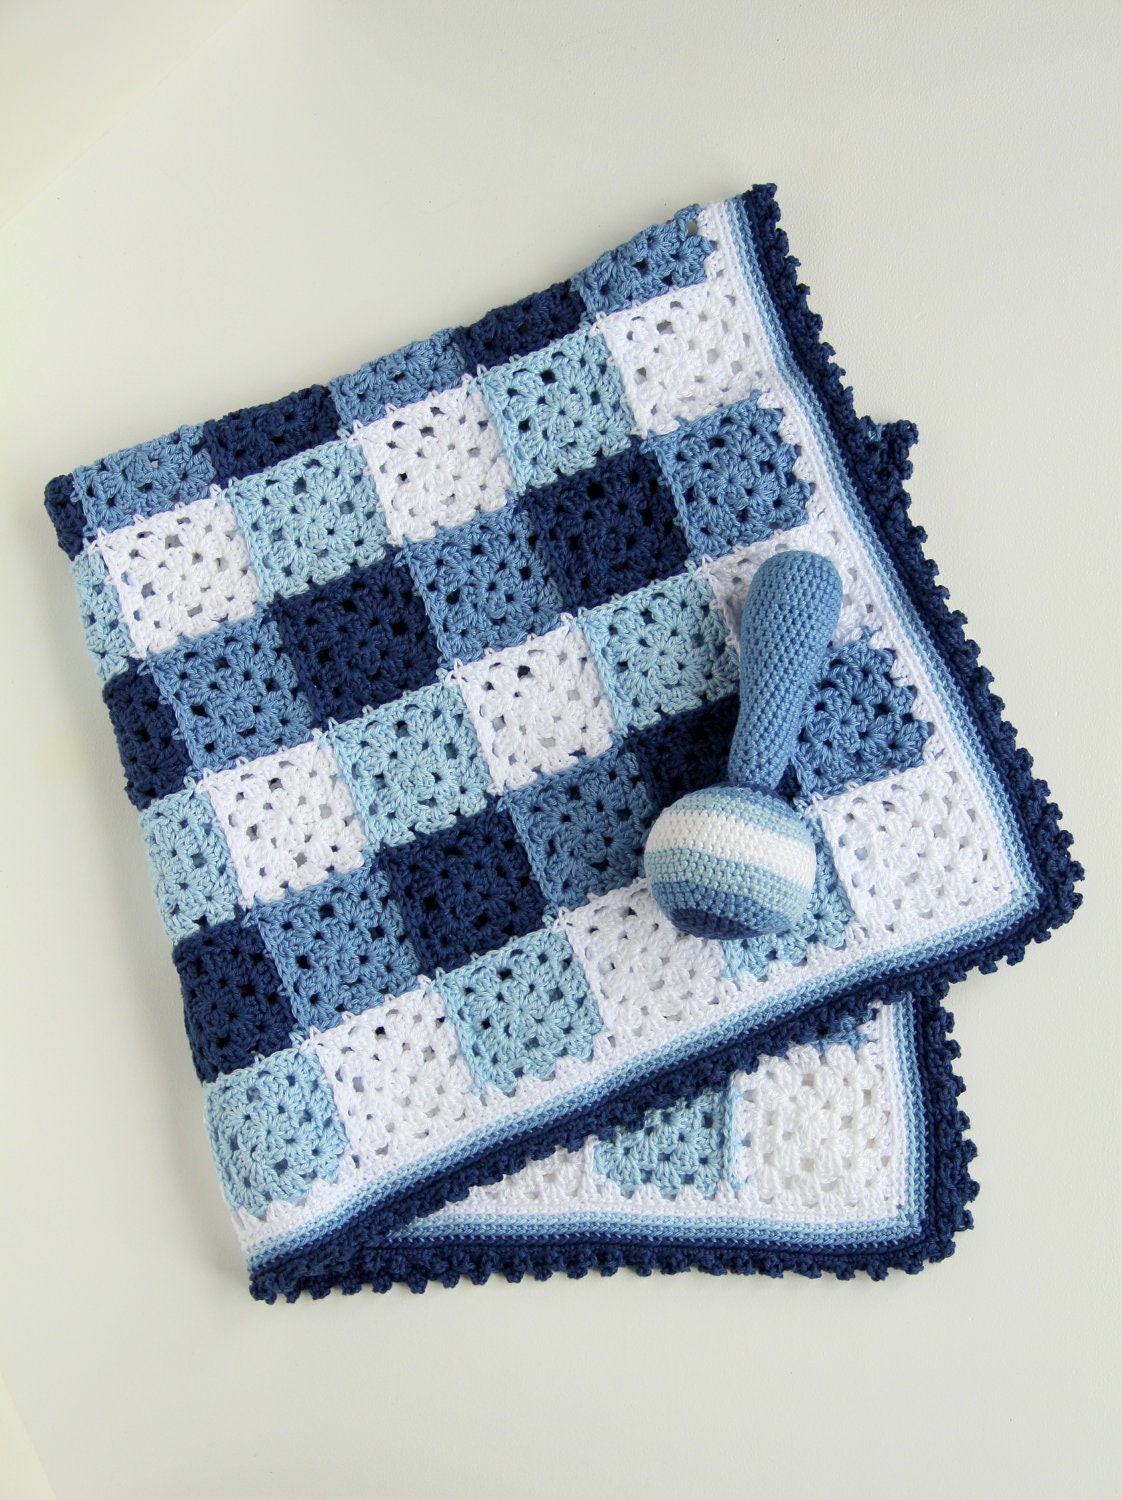 Crochet Patterns Etsy : Crochet pattern baby blanket and rattle by creJJtion on Etsy